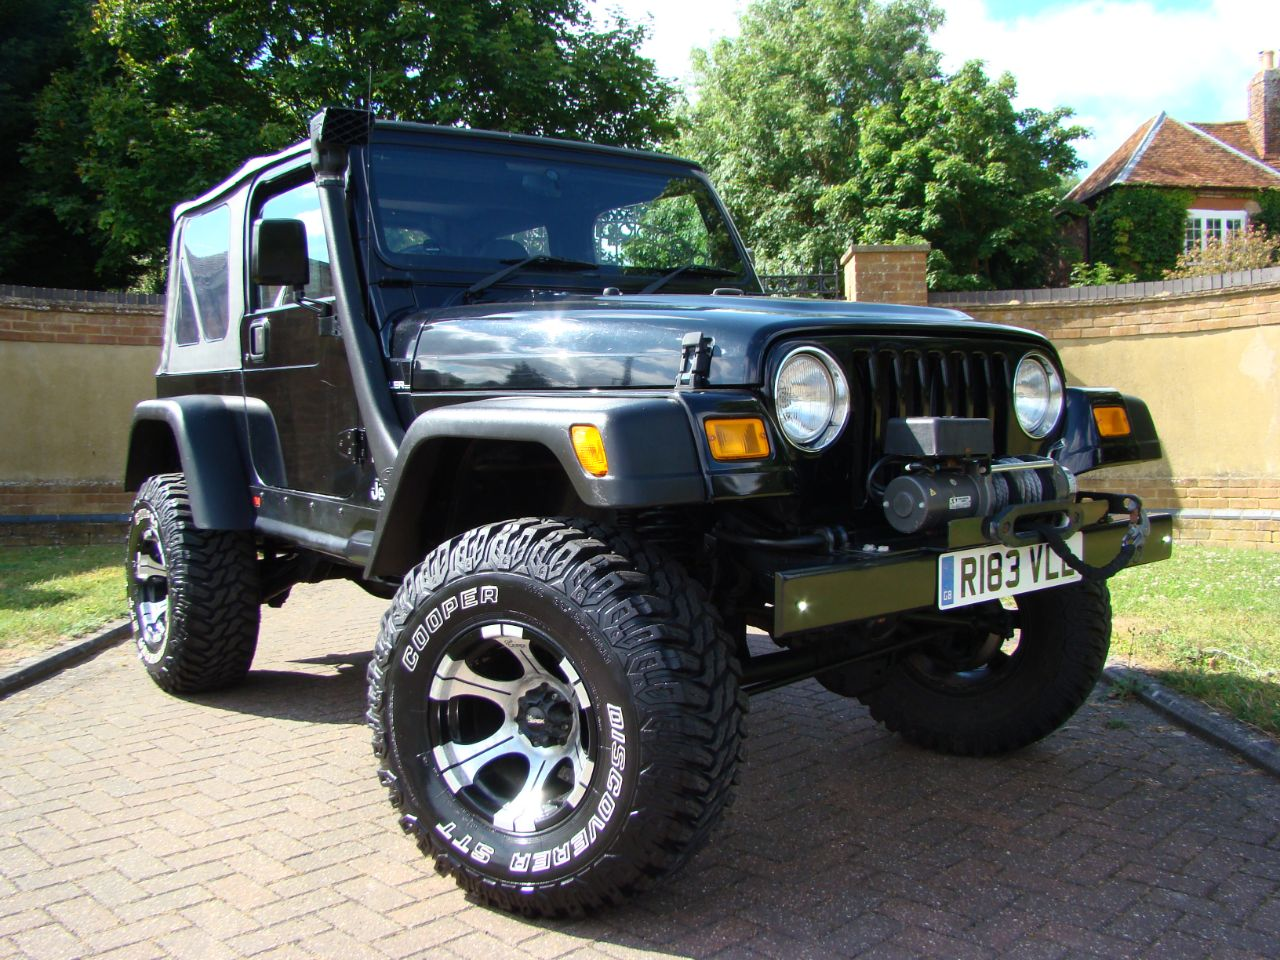 Jeep Wrangler 4.0 Sport Soft Top Manual Four Wheel Drive Petrol Black at Jeep Wranglers Leighton Buzzard